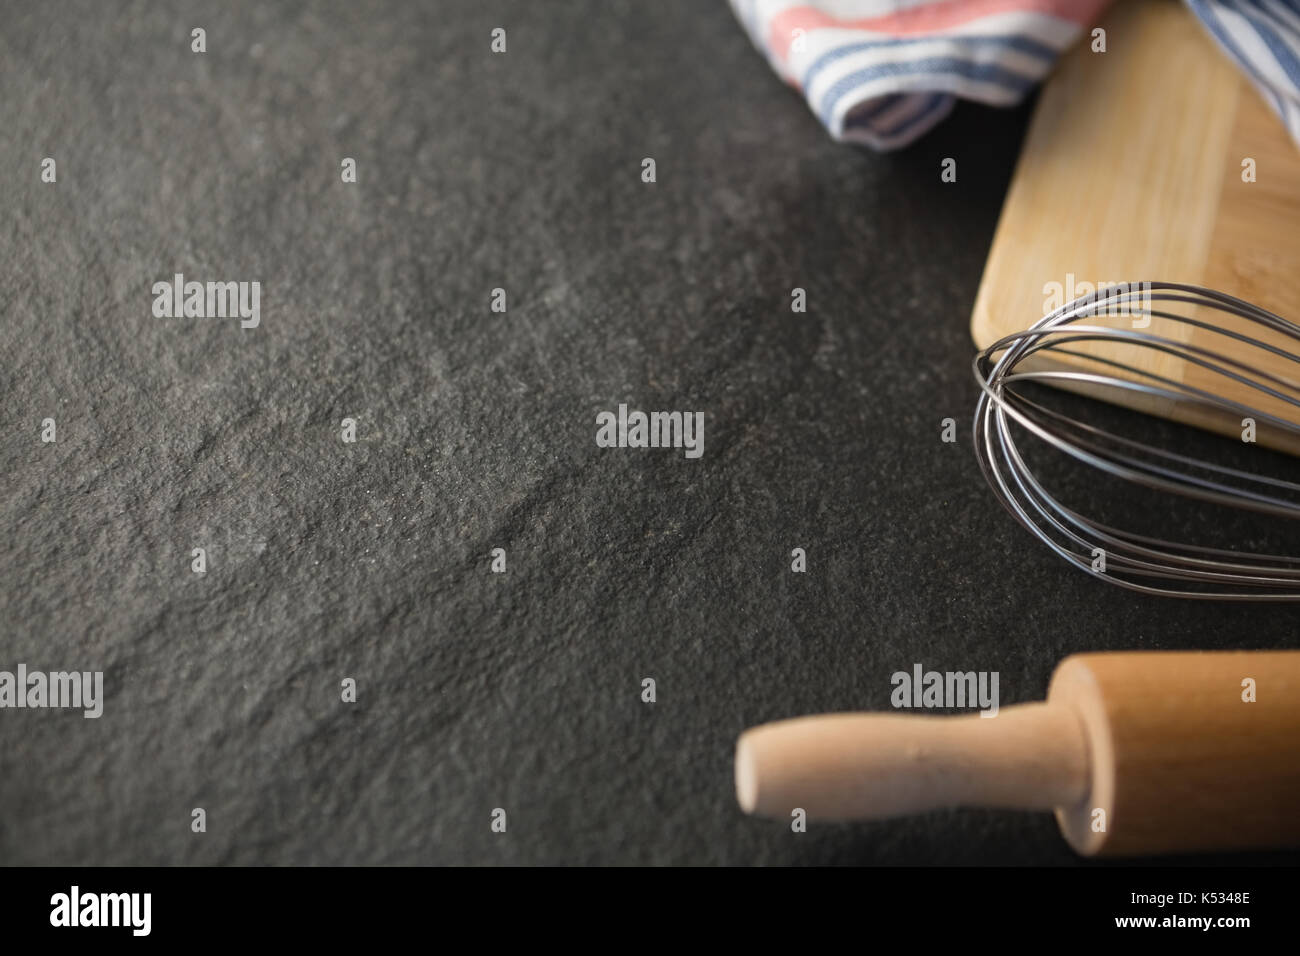 Close up of kitchen utensils on table - Stock Image